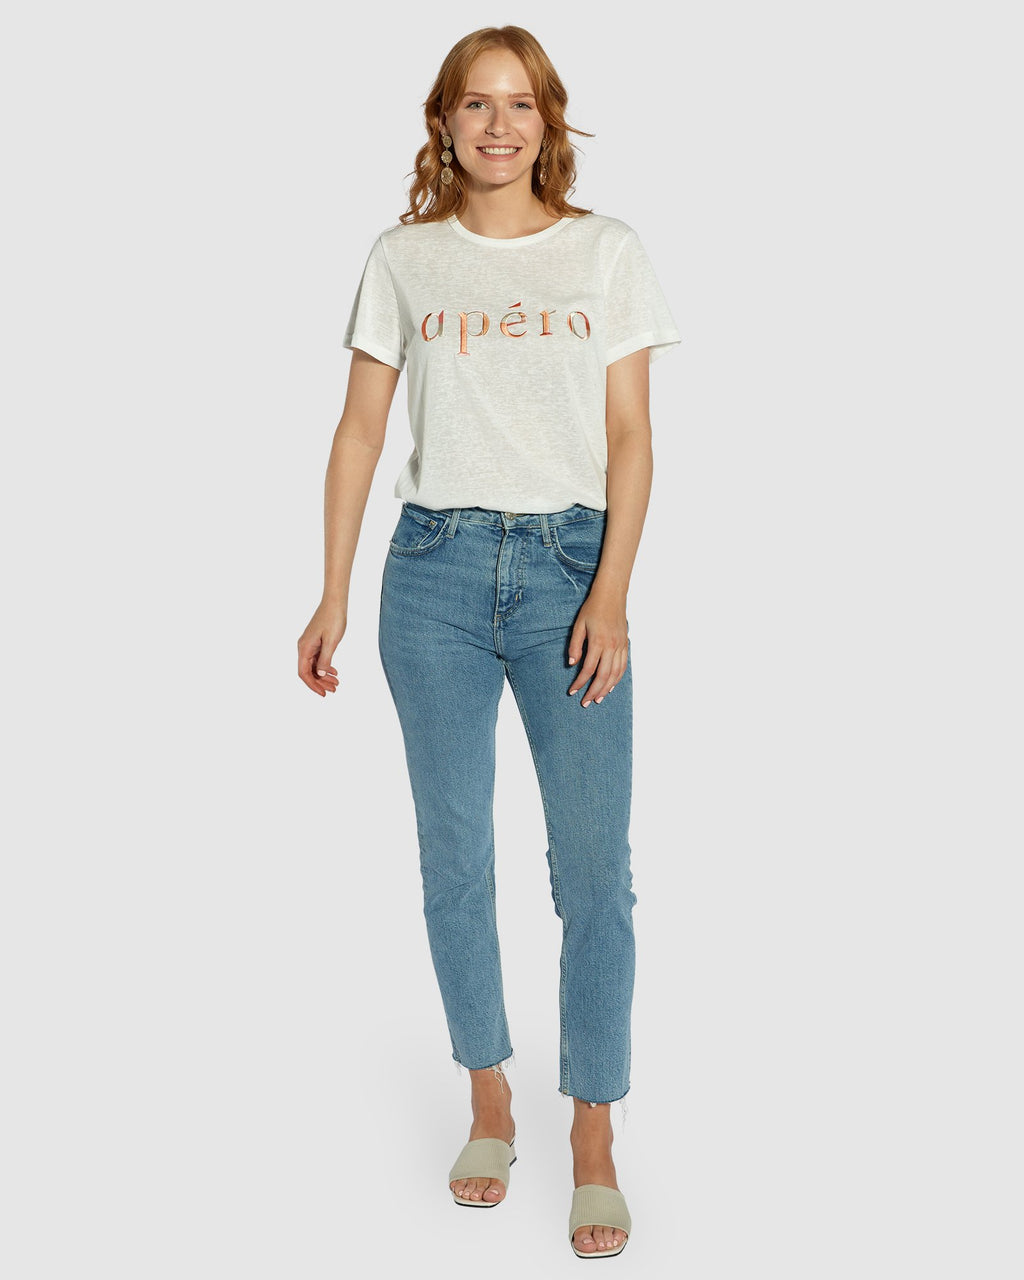 Apero Marble Emroided Femme Tee in White/Multi